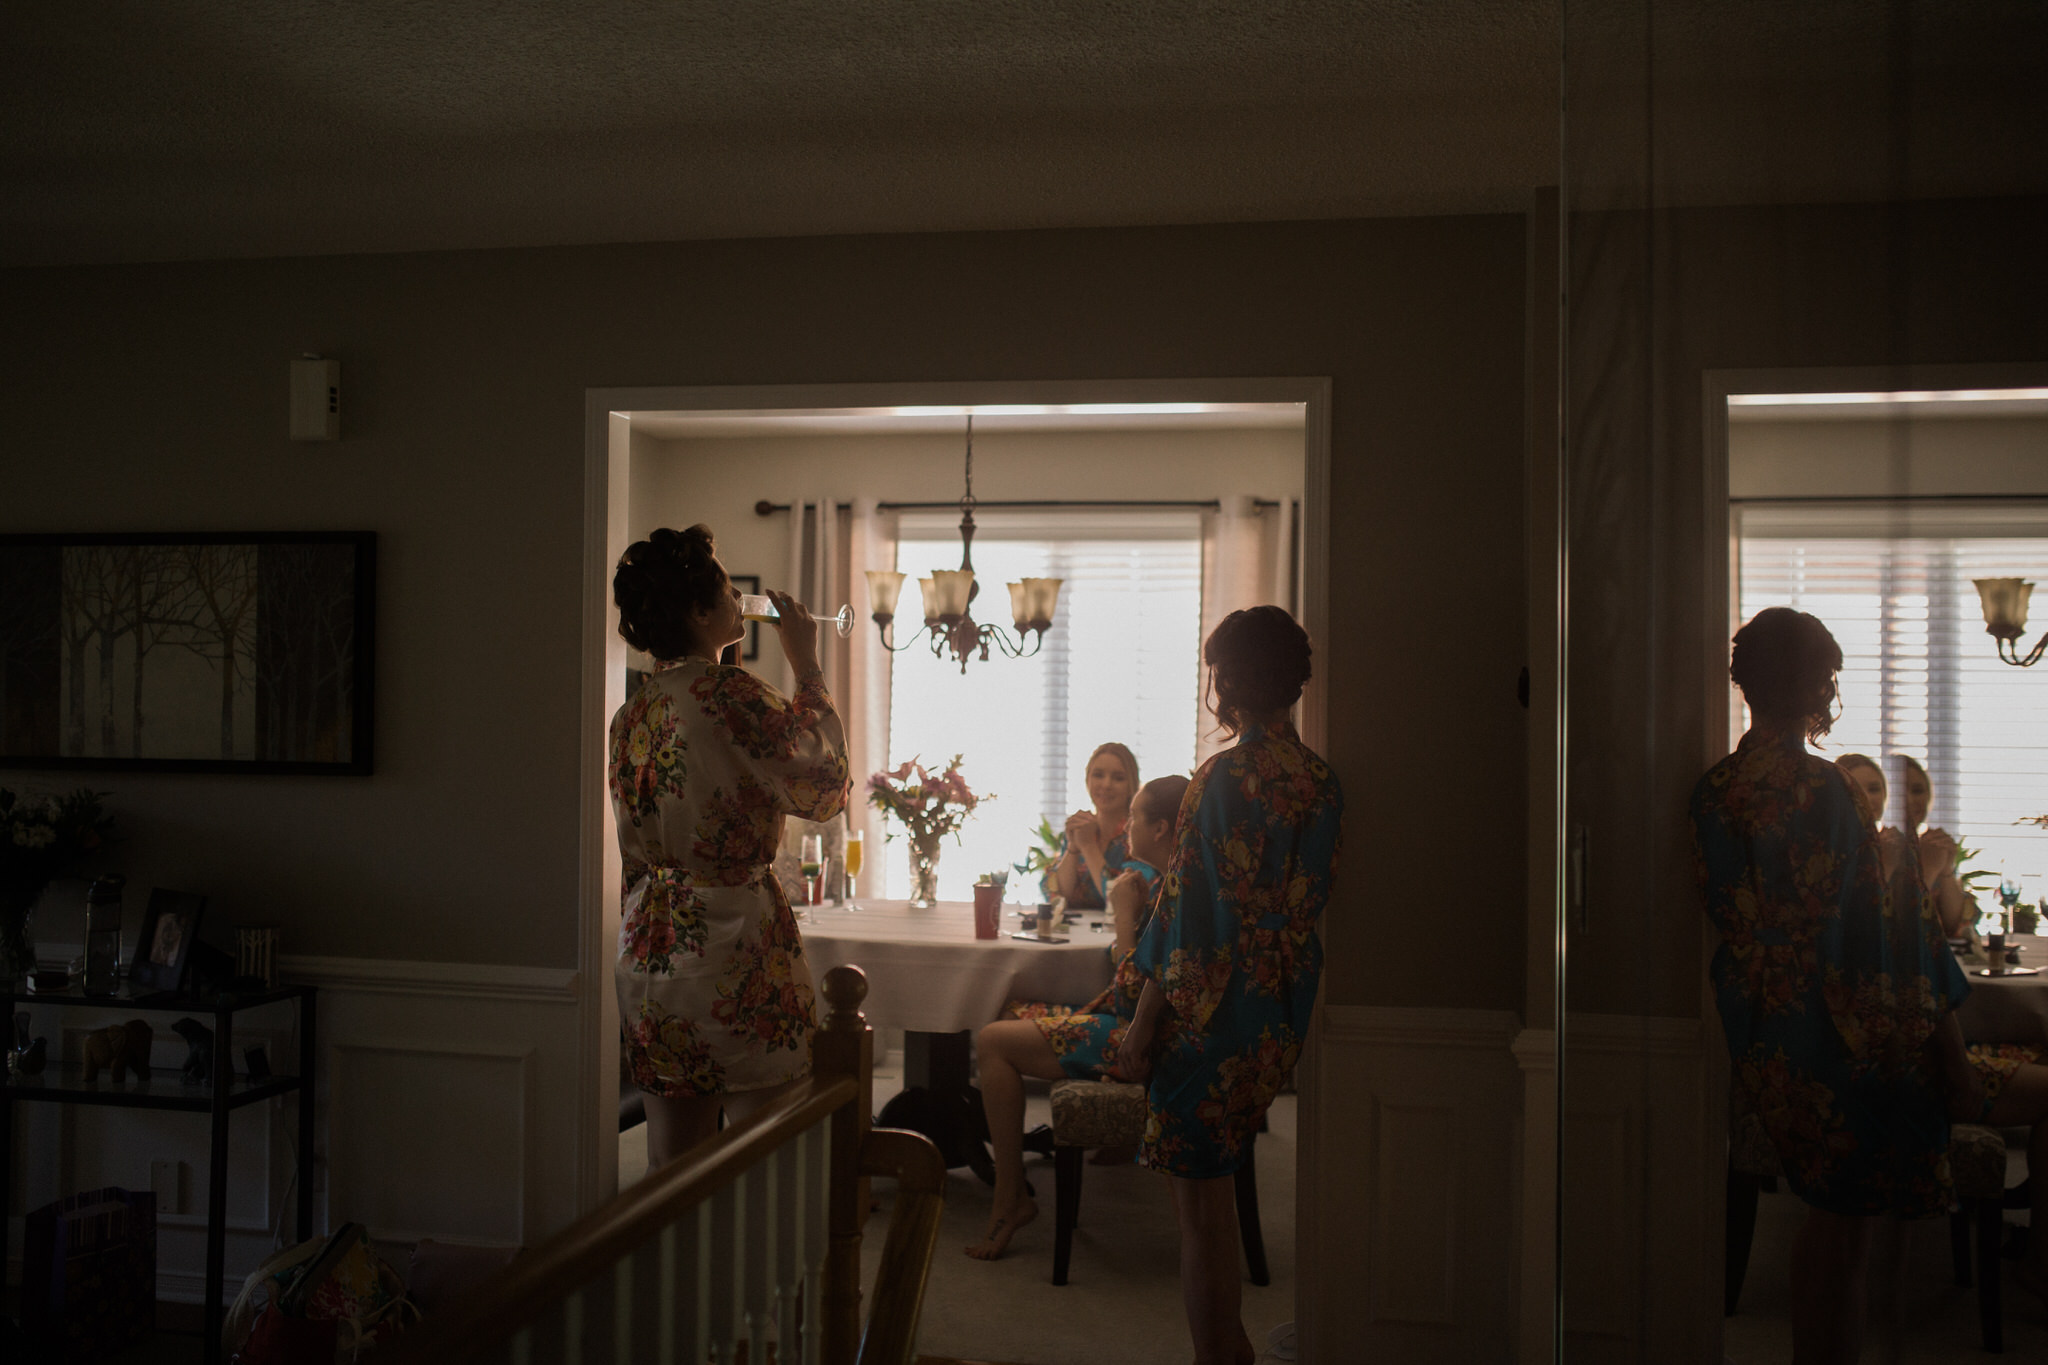 Whitby Wedding Photographer Carol Poitras - champagne getting ready